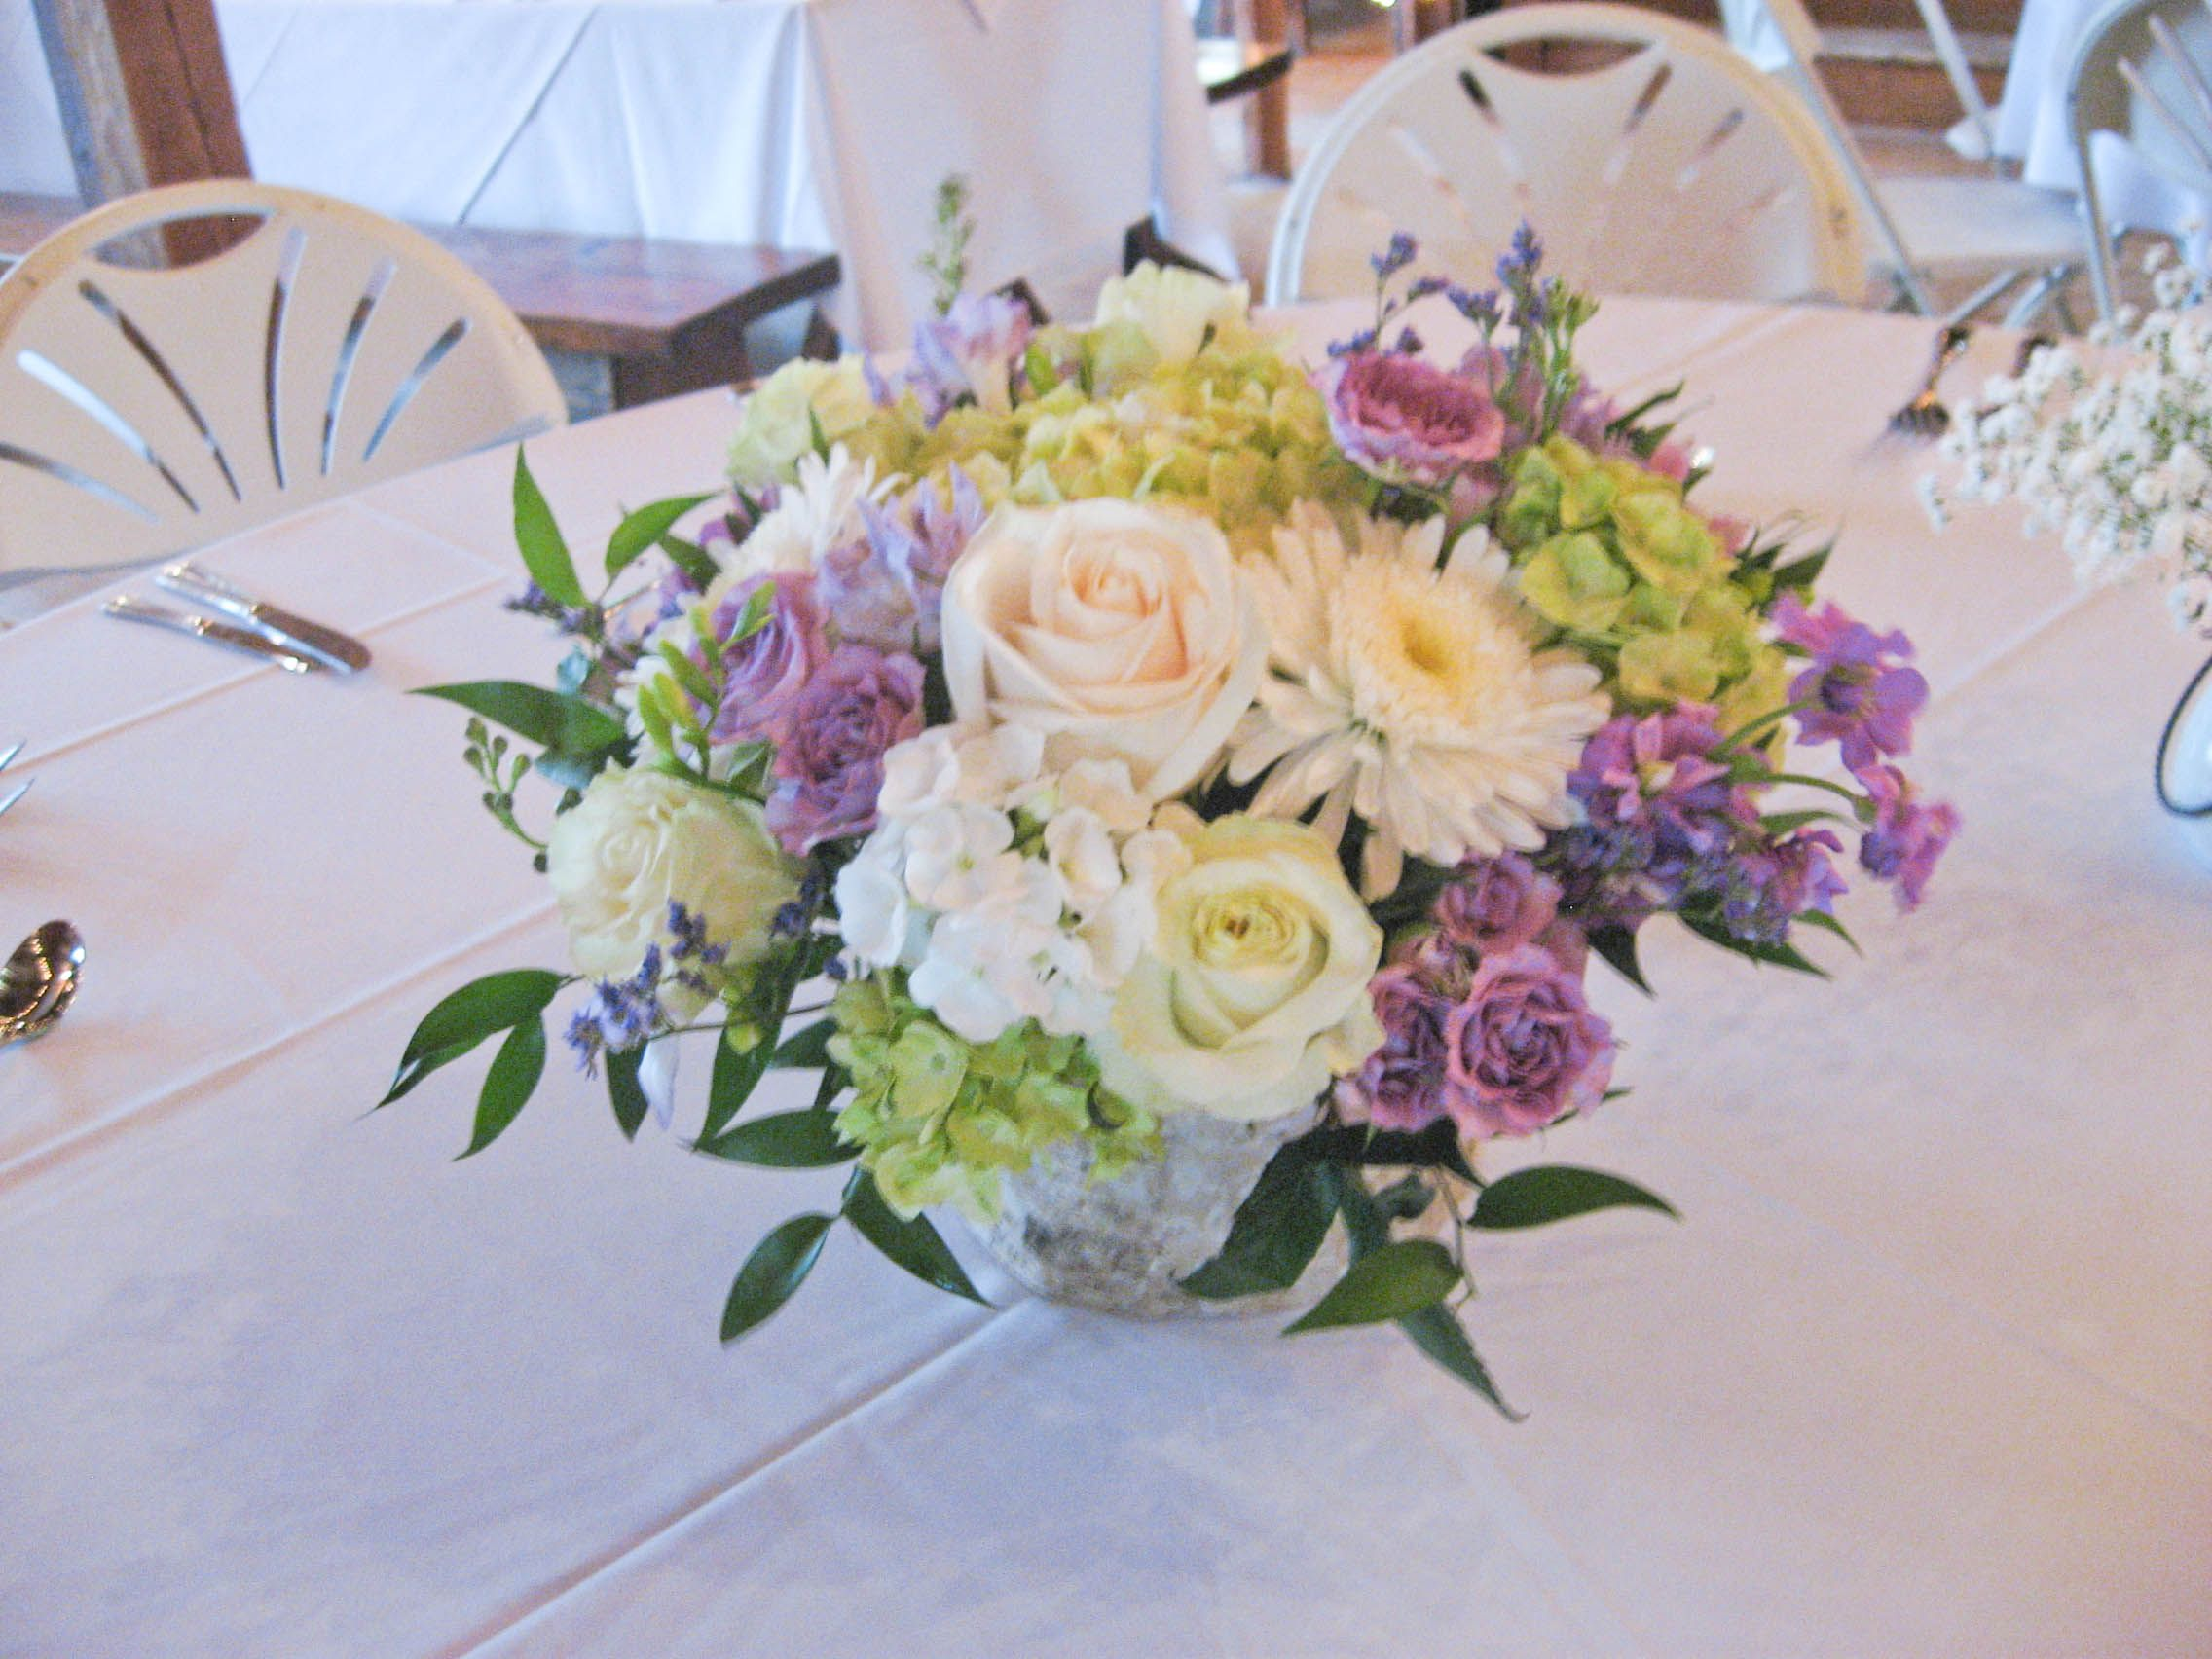 Beautiful centerpiece created with lavender white cream